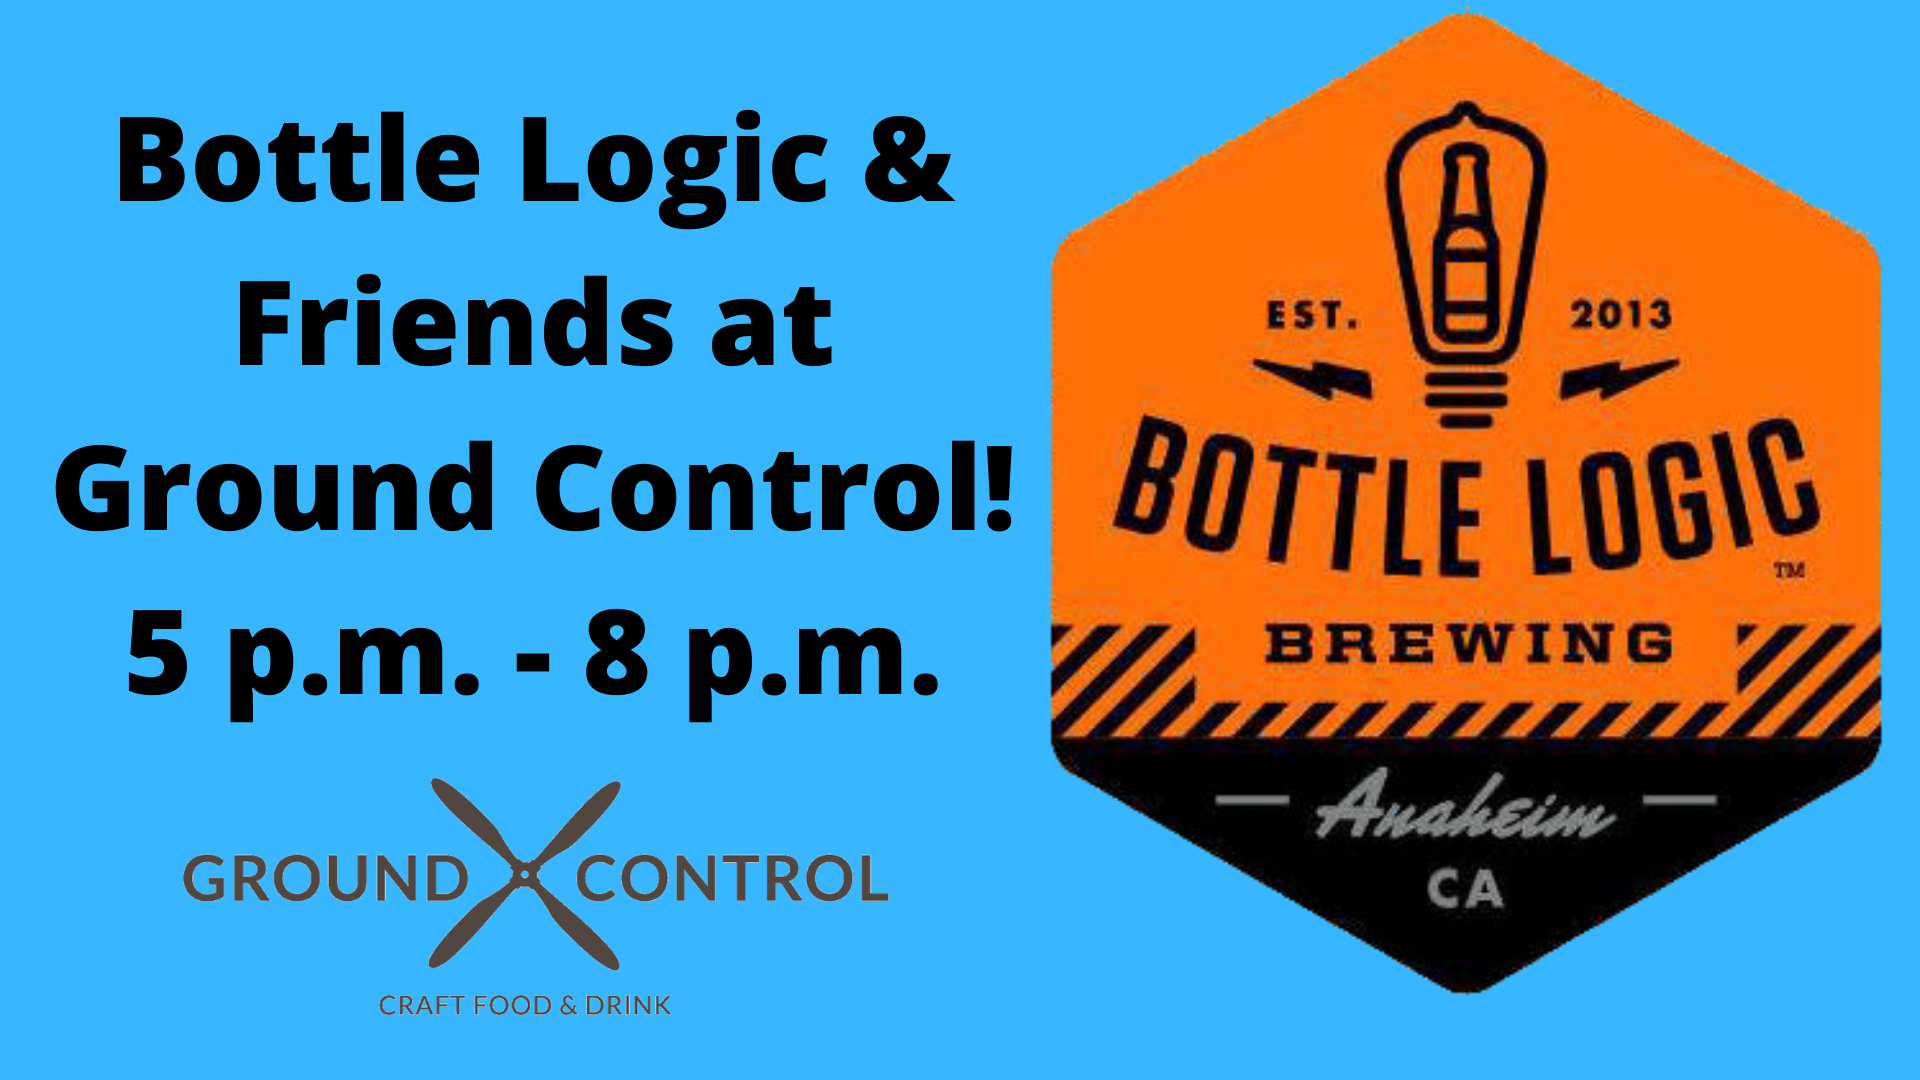 BOTTLE LOGIC AND FRIENDS!